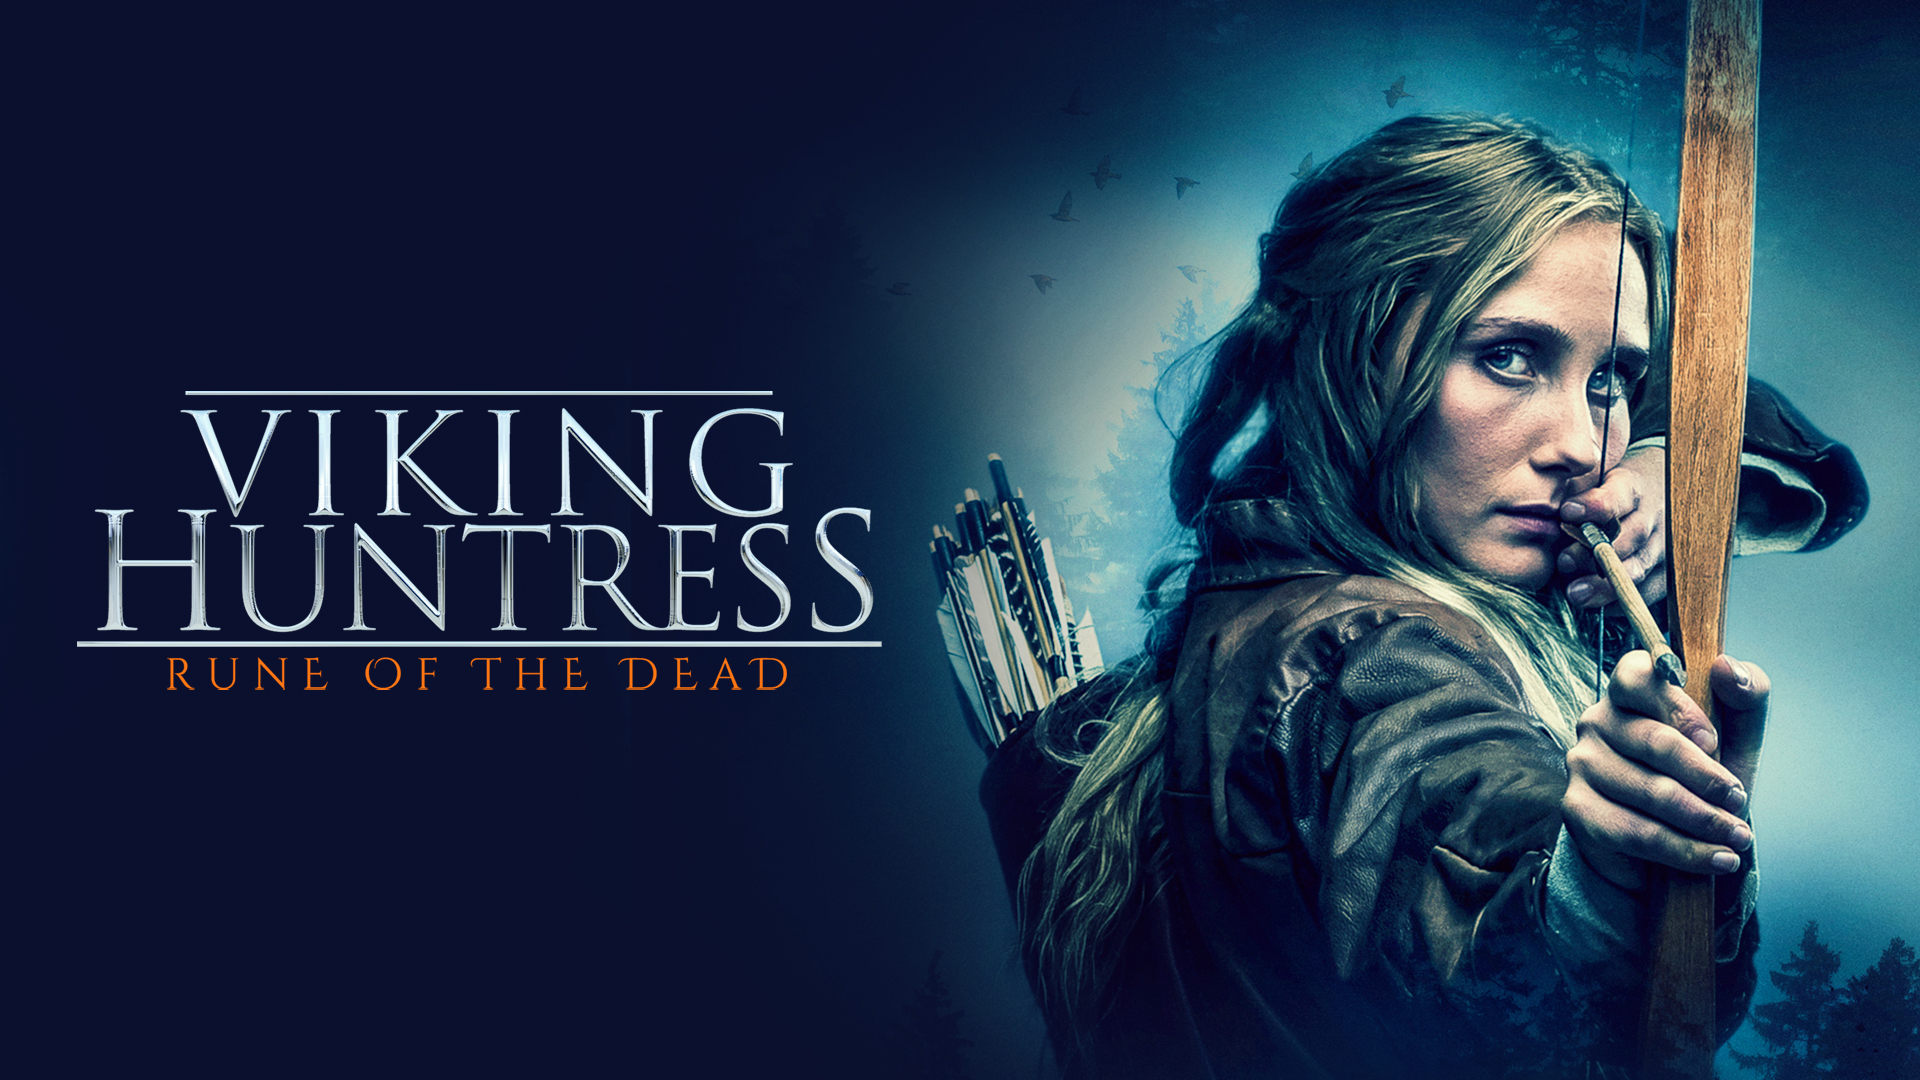 Viking Huntress: Rune of the Dead on Amazon Prime Instant Video UK